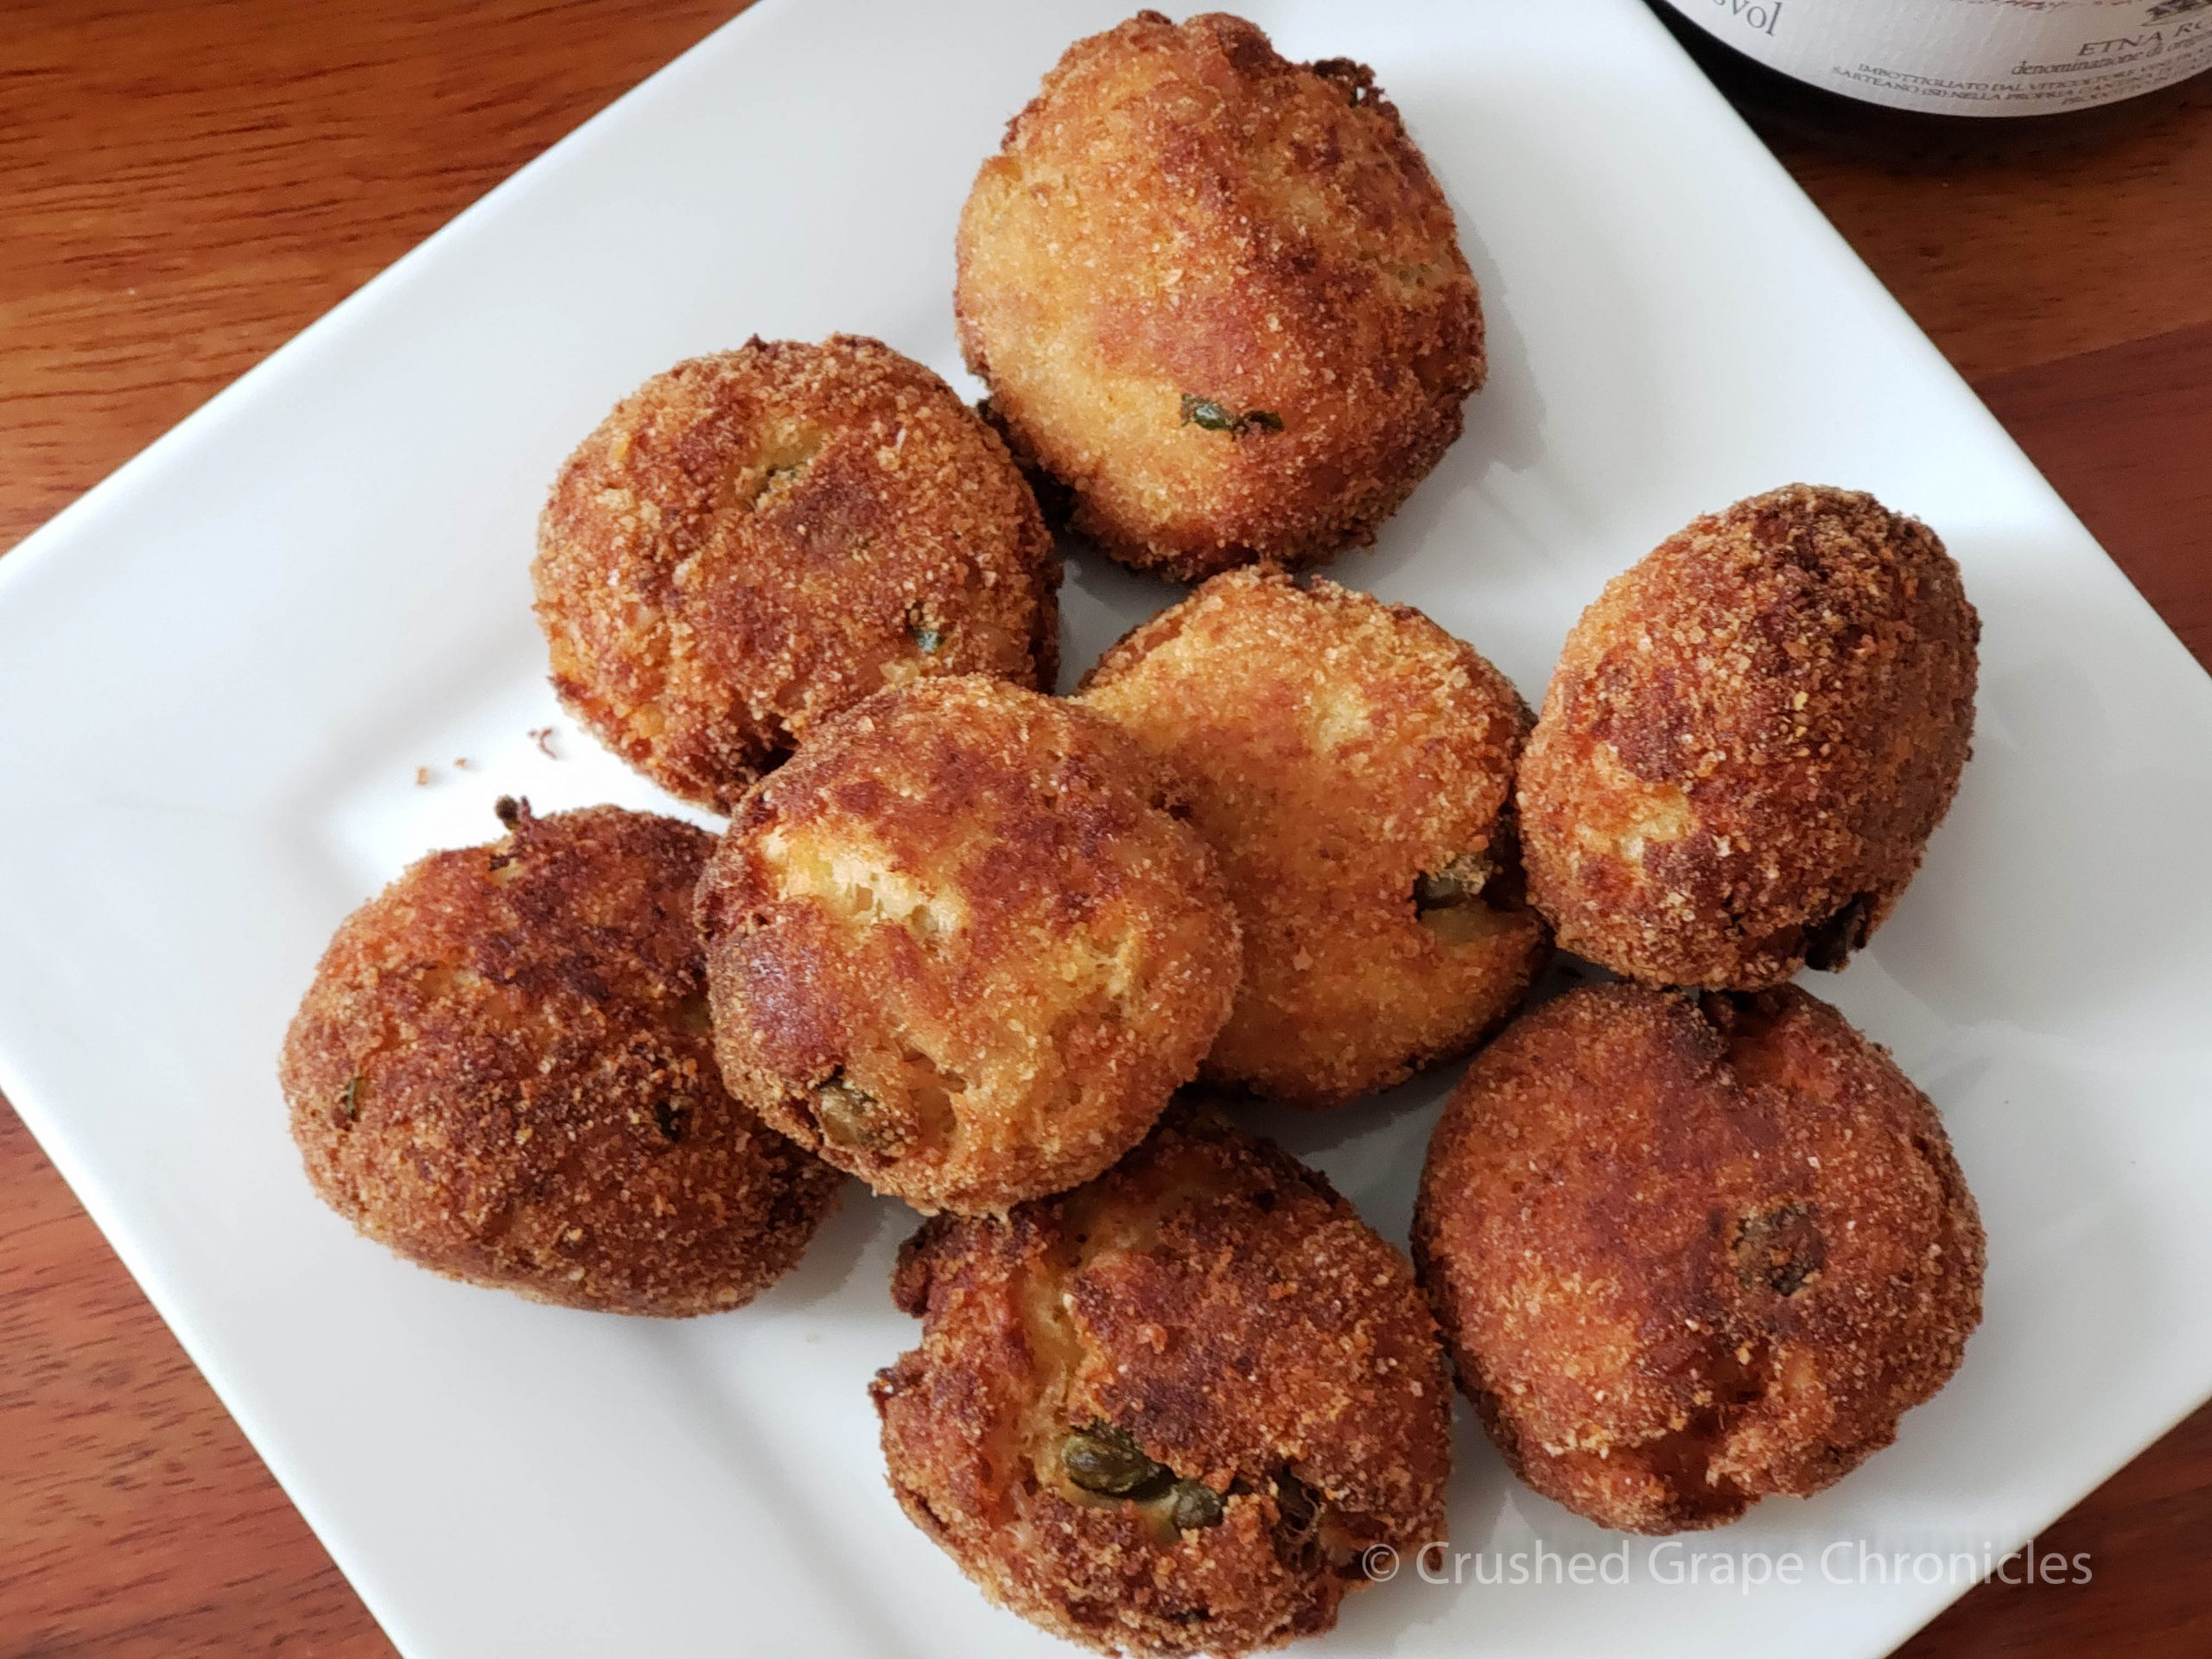 Polpette di tonno - Fried Tuna balls